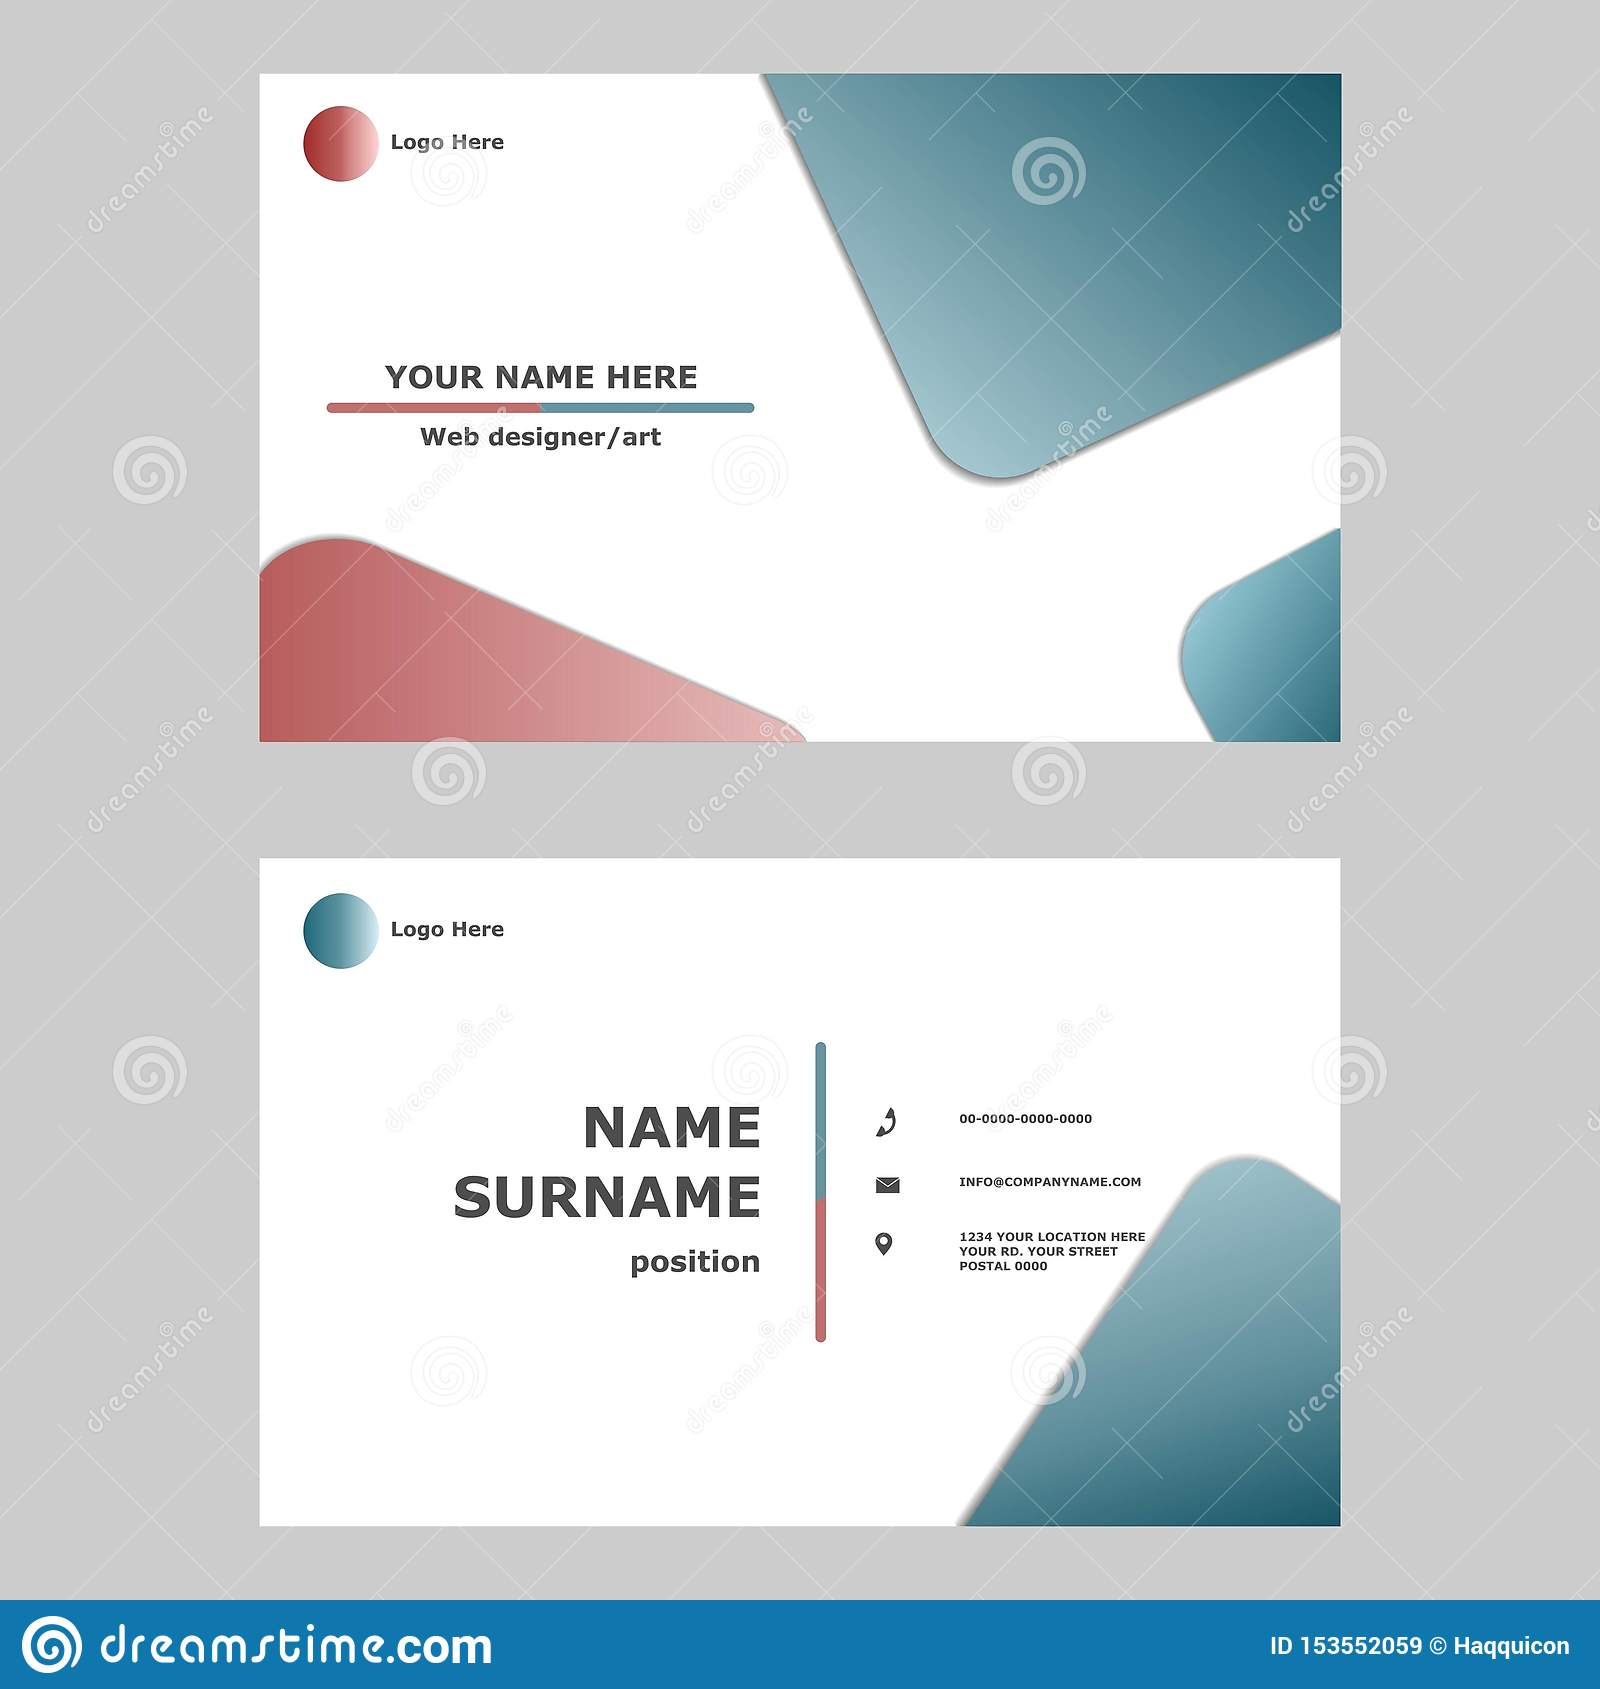 Business card template design concept.Illustration of vector graphic card .modern,simple and clean style design for professional c